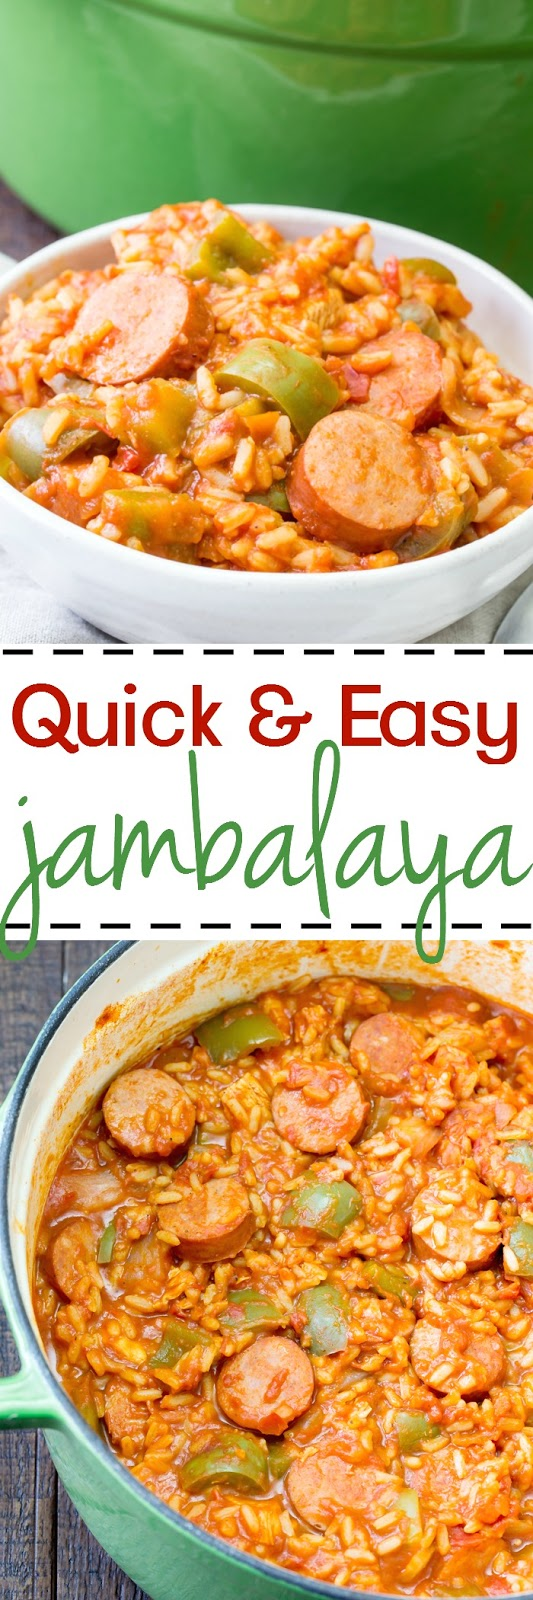 This easy one pot jambalaya comes together quick and is a classic Louisiana dish full of flavor with chicken, sausage, rice and the right amount of spice!  Perfect for Mardi Gras.